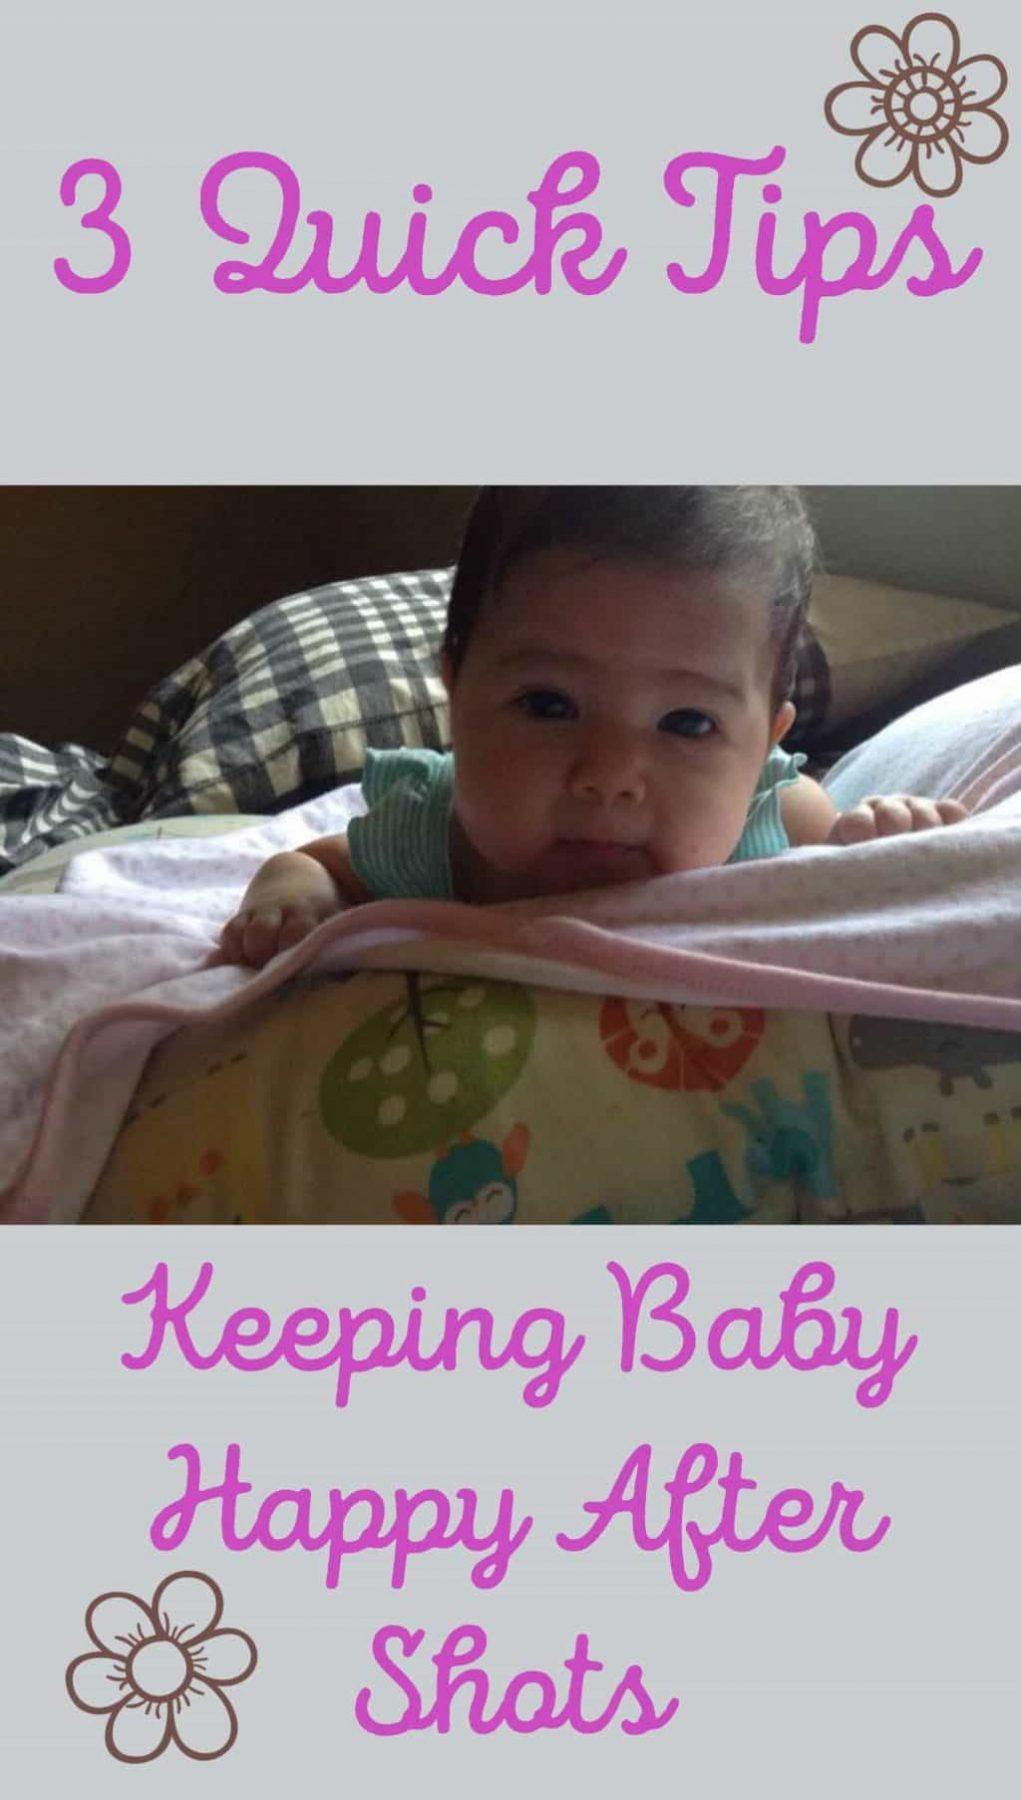 3 Quick Tips: Keeping Baby Happy After Shots